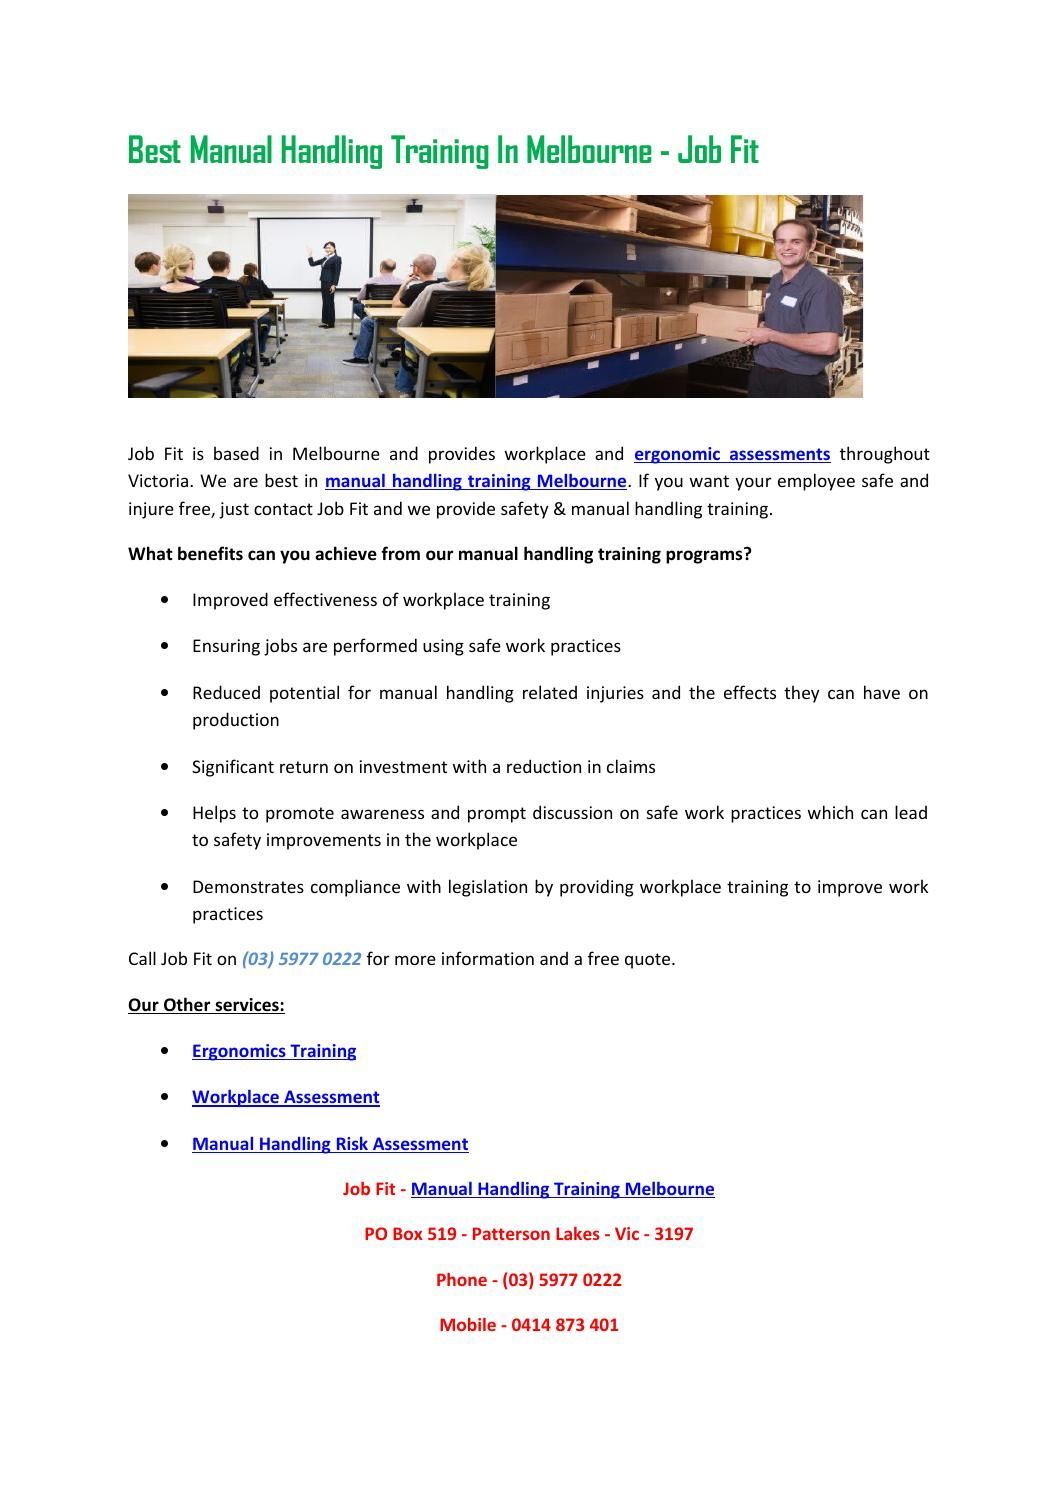 Best manual handling training in melbourne job fit (With